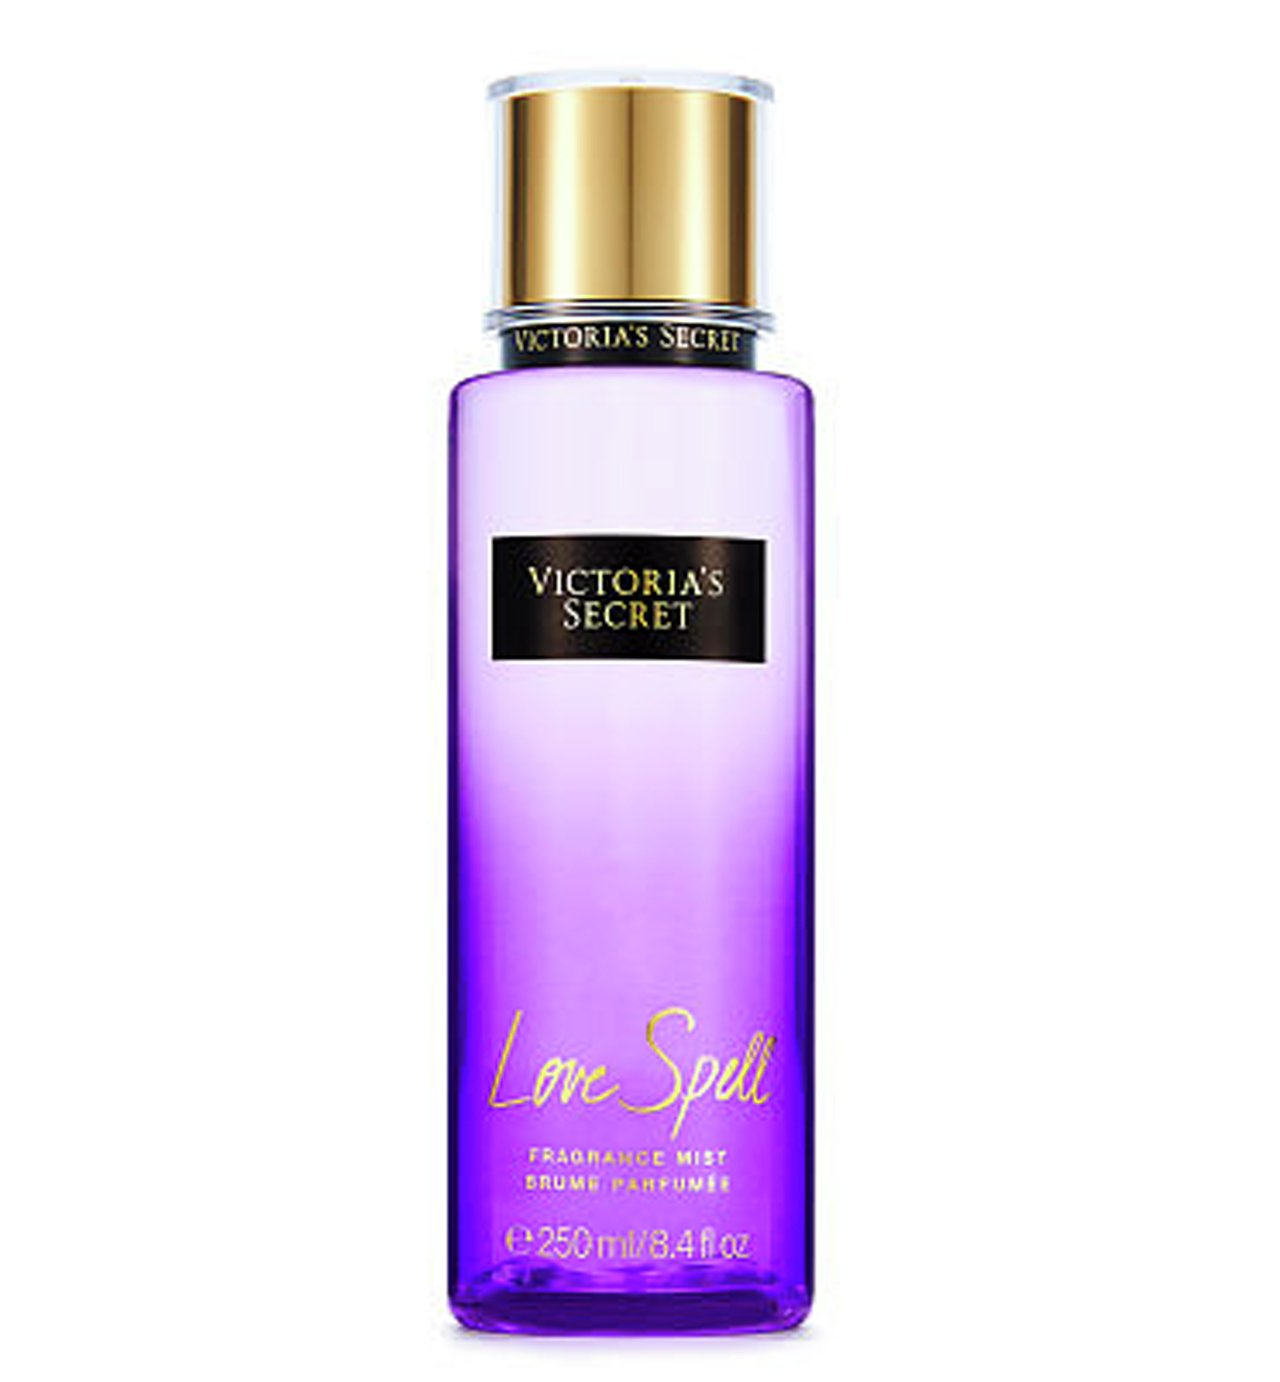 Victoria's Secret Love Spell Body Mist - 250ml